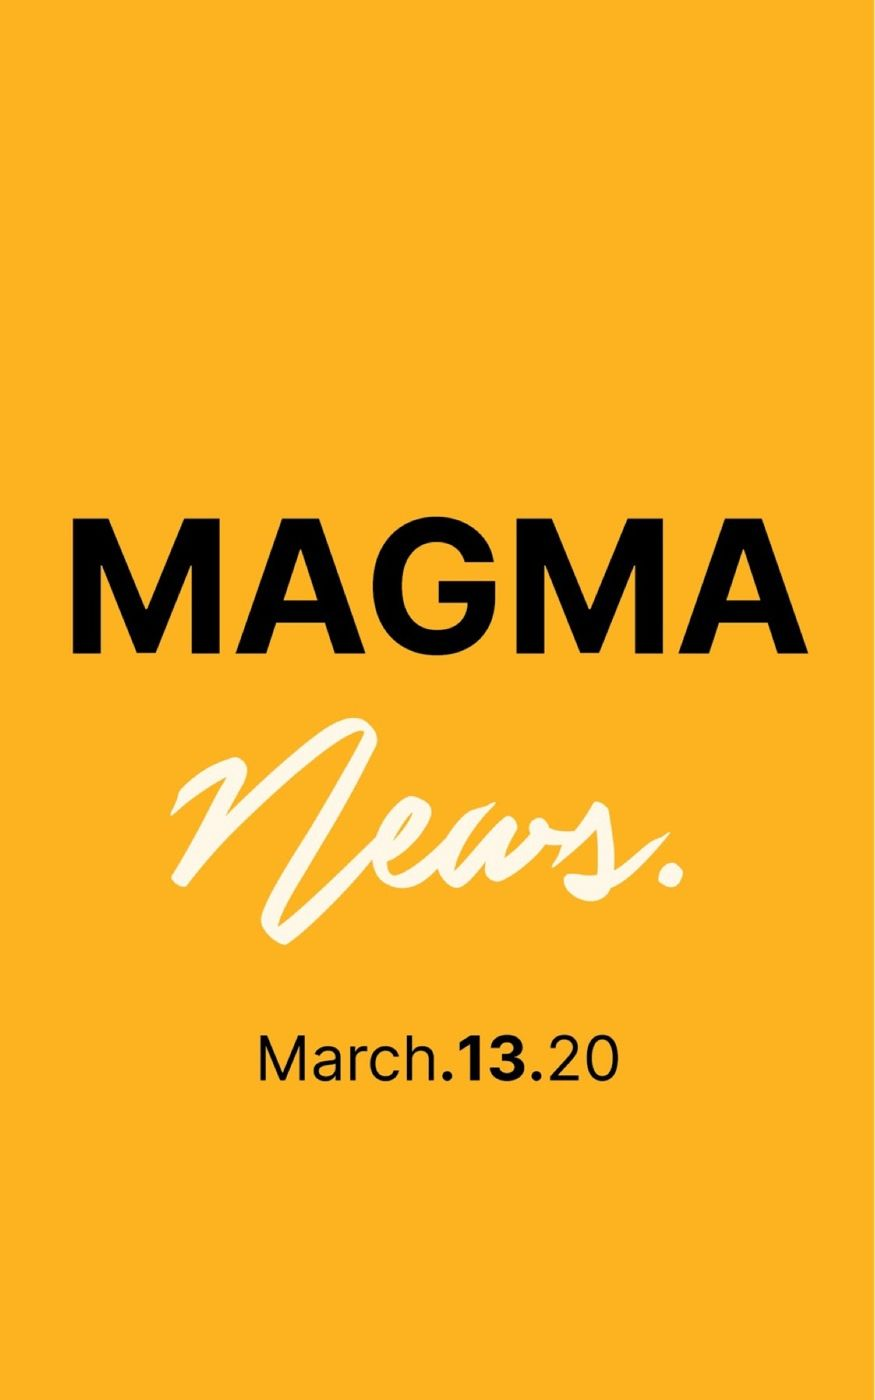 Magma News | March 13, 2020  -Trump Declares Coronavirus Outbreak a National Emergency.  -Elon Musk's Starlink is having a pernicious effect on astronomy. -Bill Gates steps down from Microsoft's Board. -New Coronavirus Test 10 Times Faster Is Approved. -Kevin Love kicks off support drive for arena workers with $100K pledge. -Call of Duty Warzone: 4 ways the new battle royale game can beat Fortnite.  Check back every Monday, Wednesday & Friday